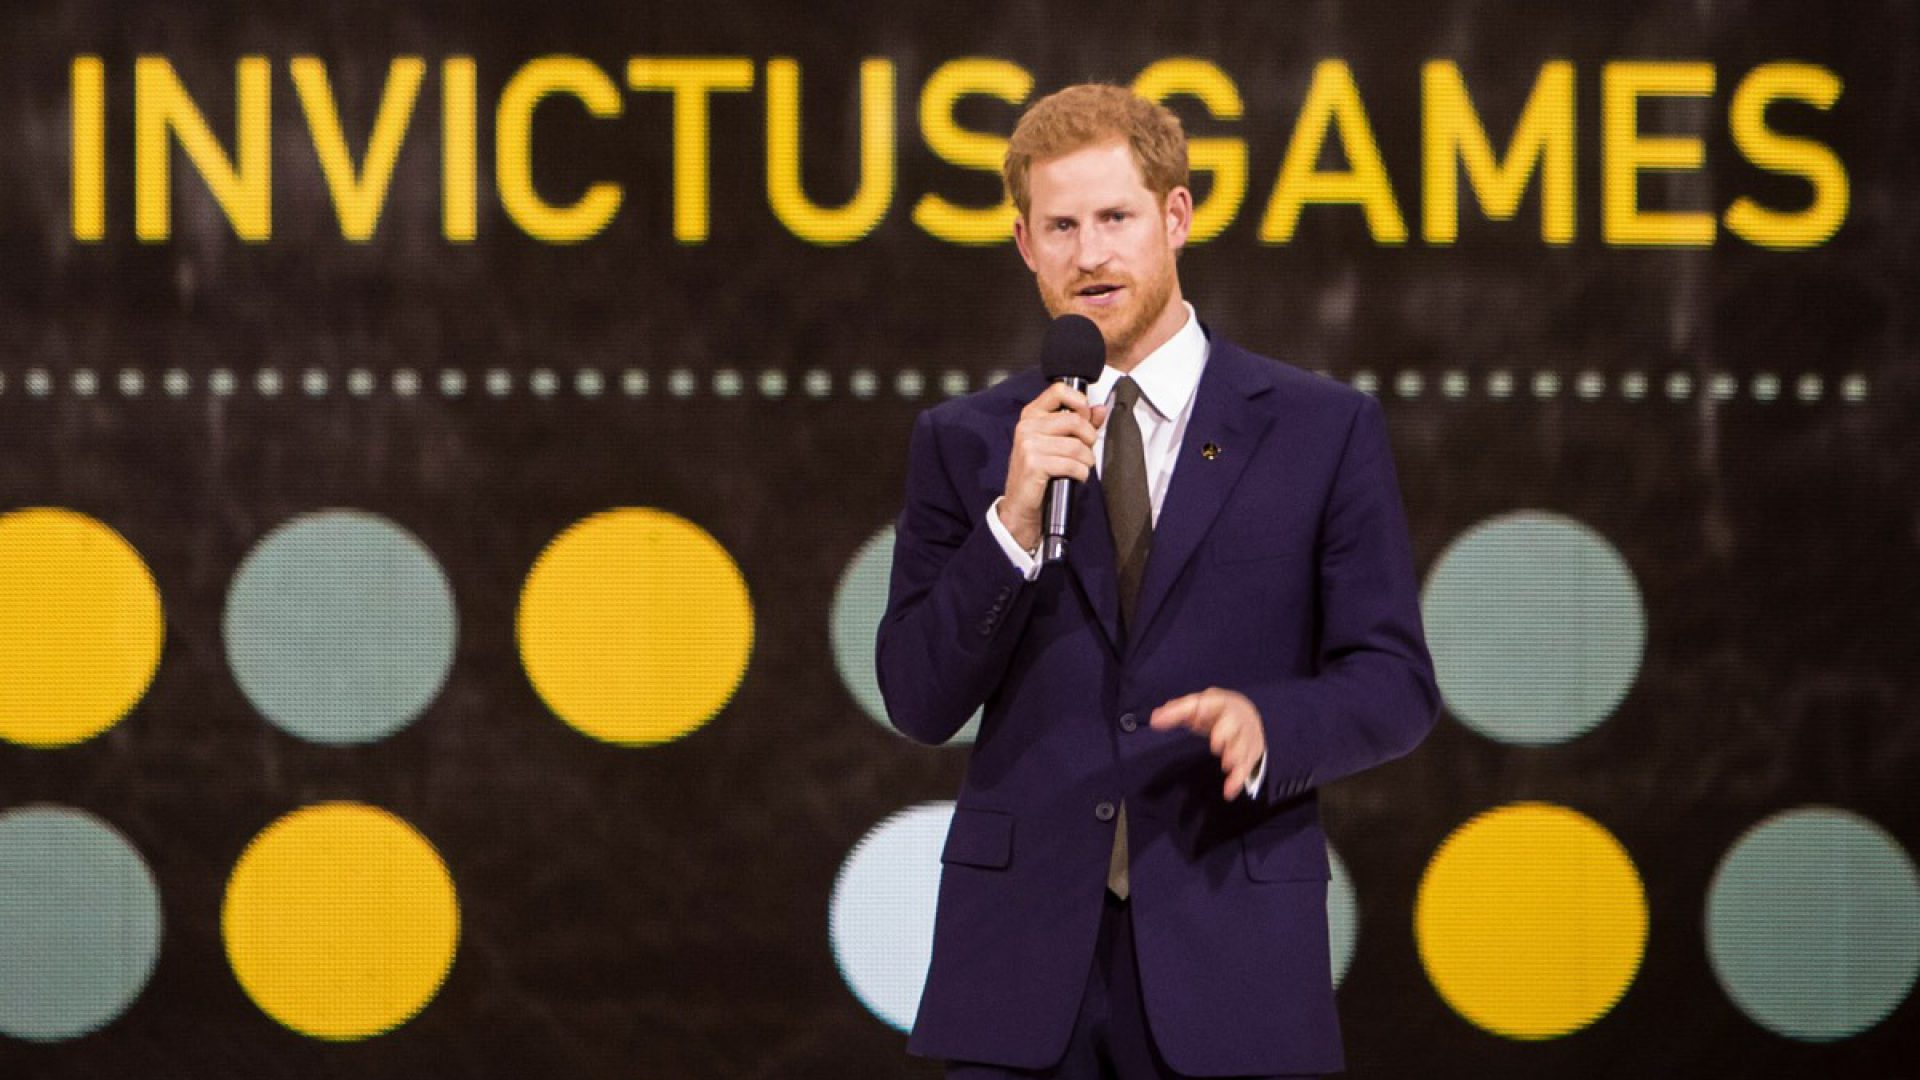 Invictus Games 2020.Invictus Games 2020 Heading To The Netherlands The Hague